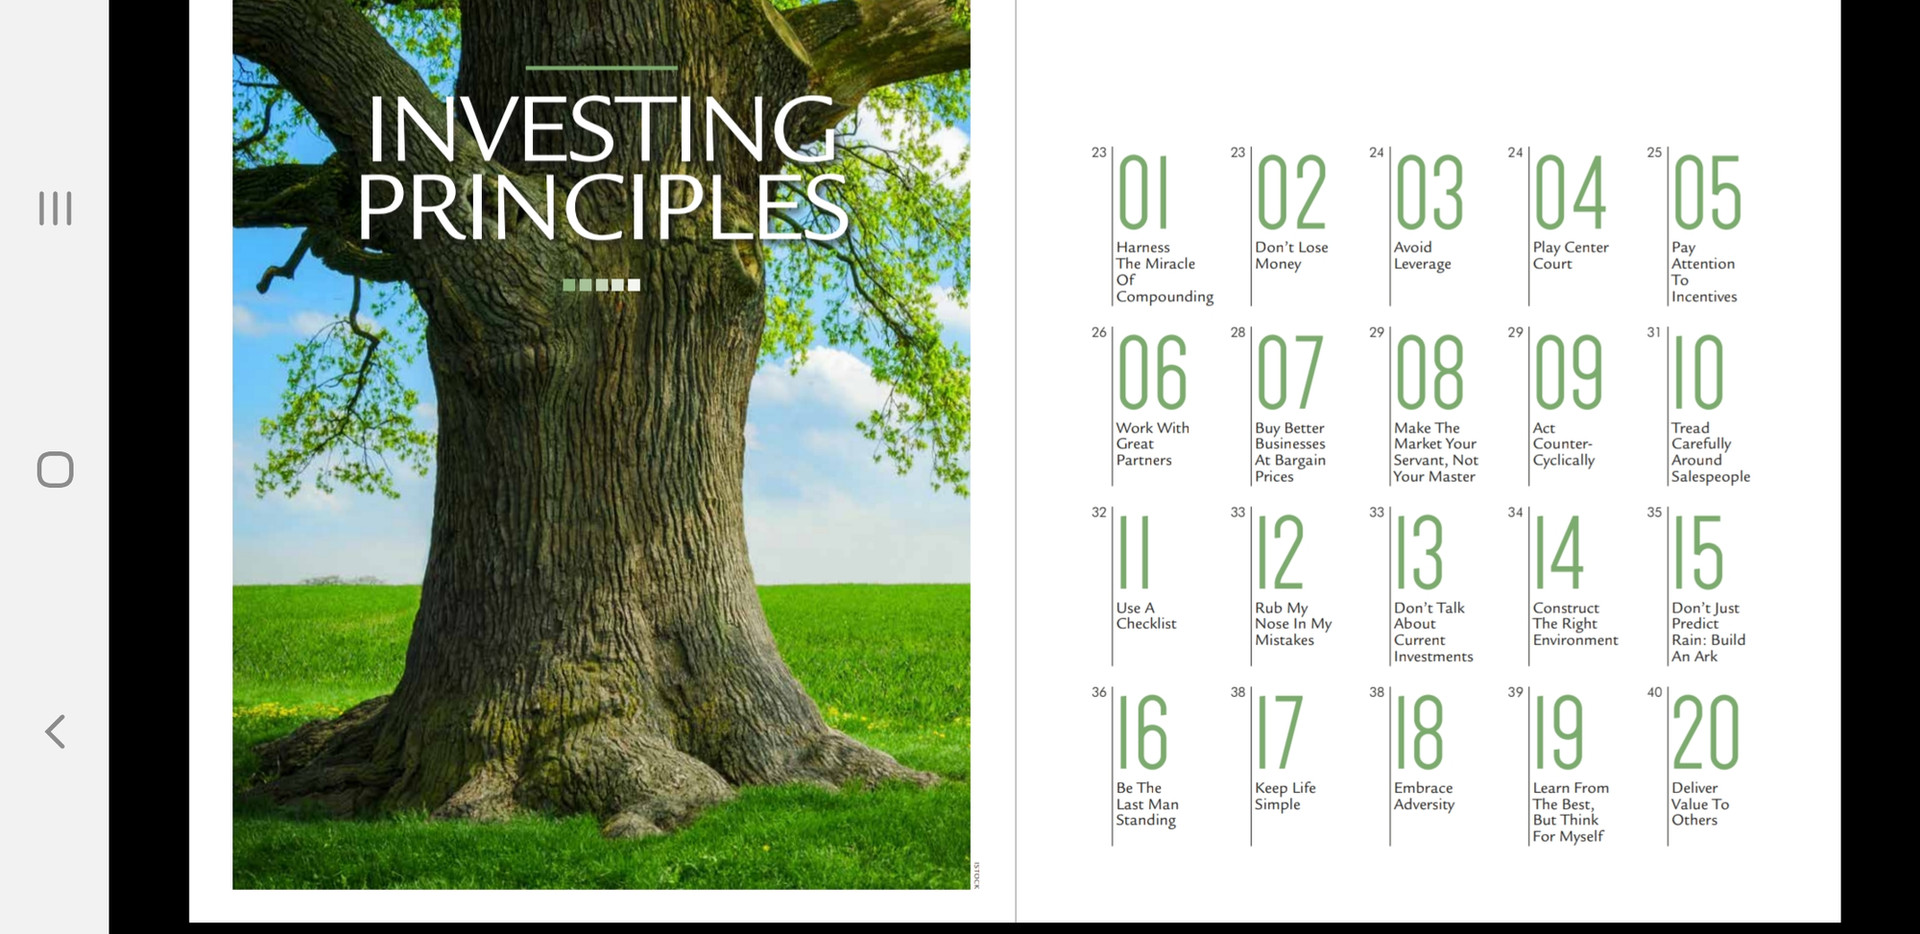 Guy Spier's Investment Principles